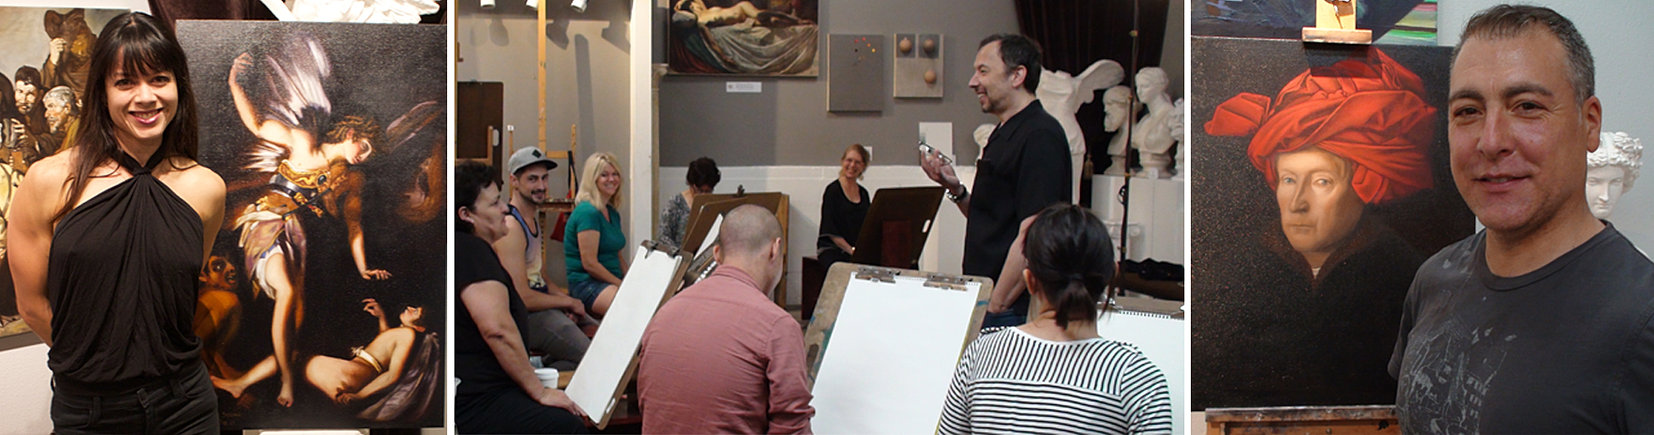 Kline academy of fine art art classes in los angeles for for Craft workshops los angeles